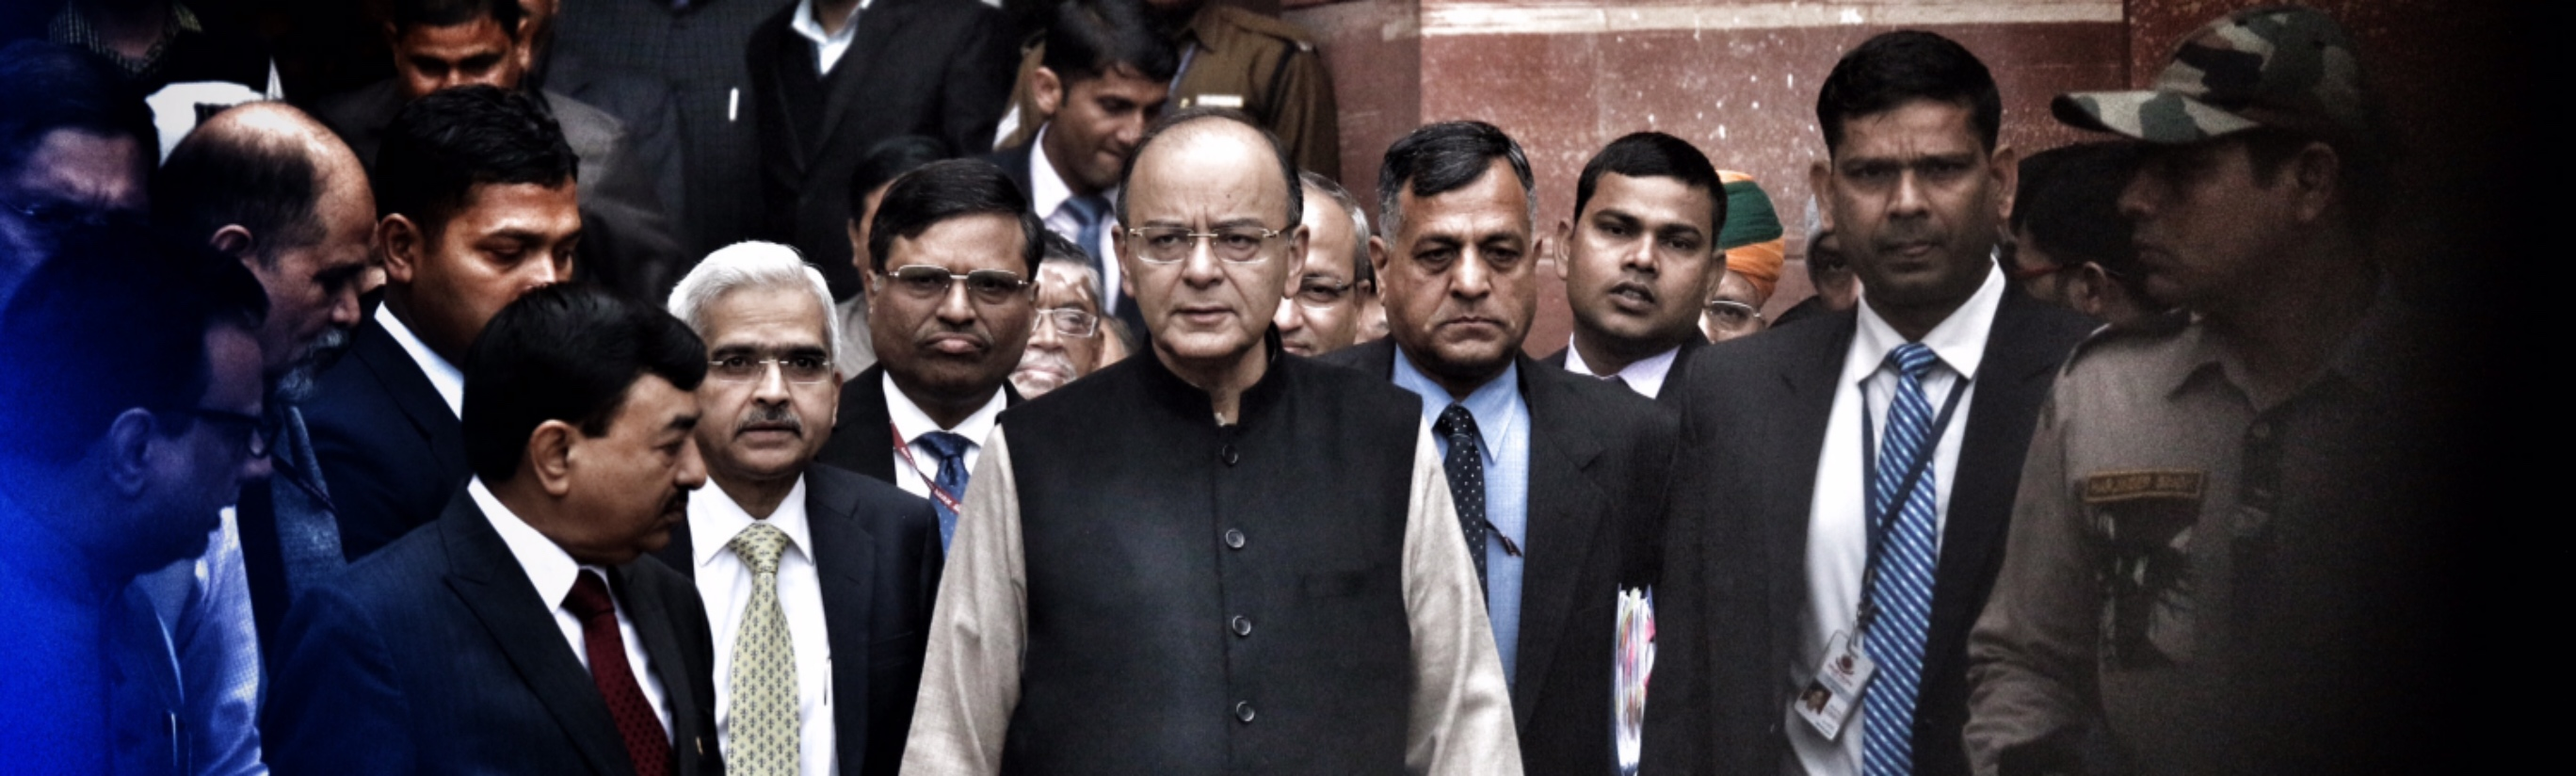 Finance minister Arun Jaitley before presenting the Union Budget 2017-18. Credit: Shome Basu/The Wire